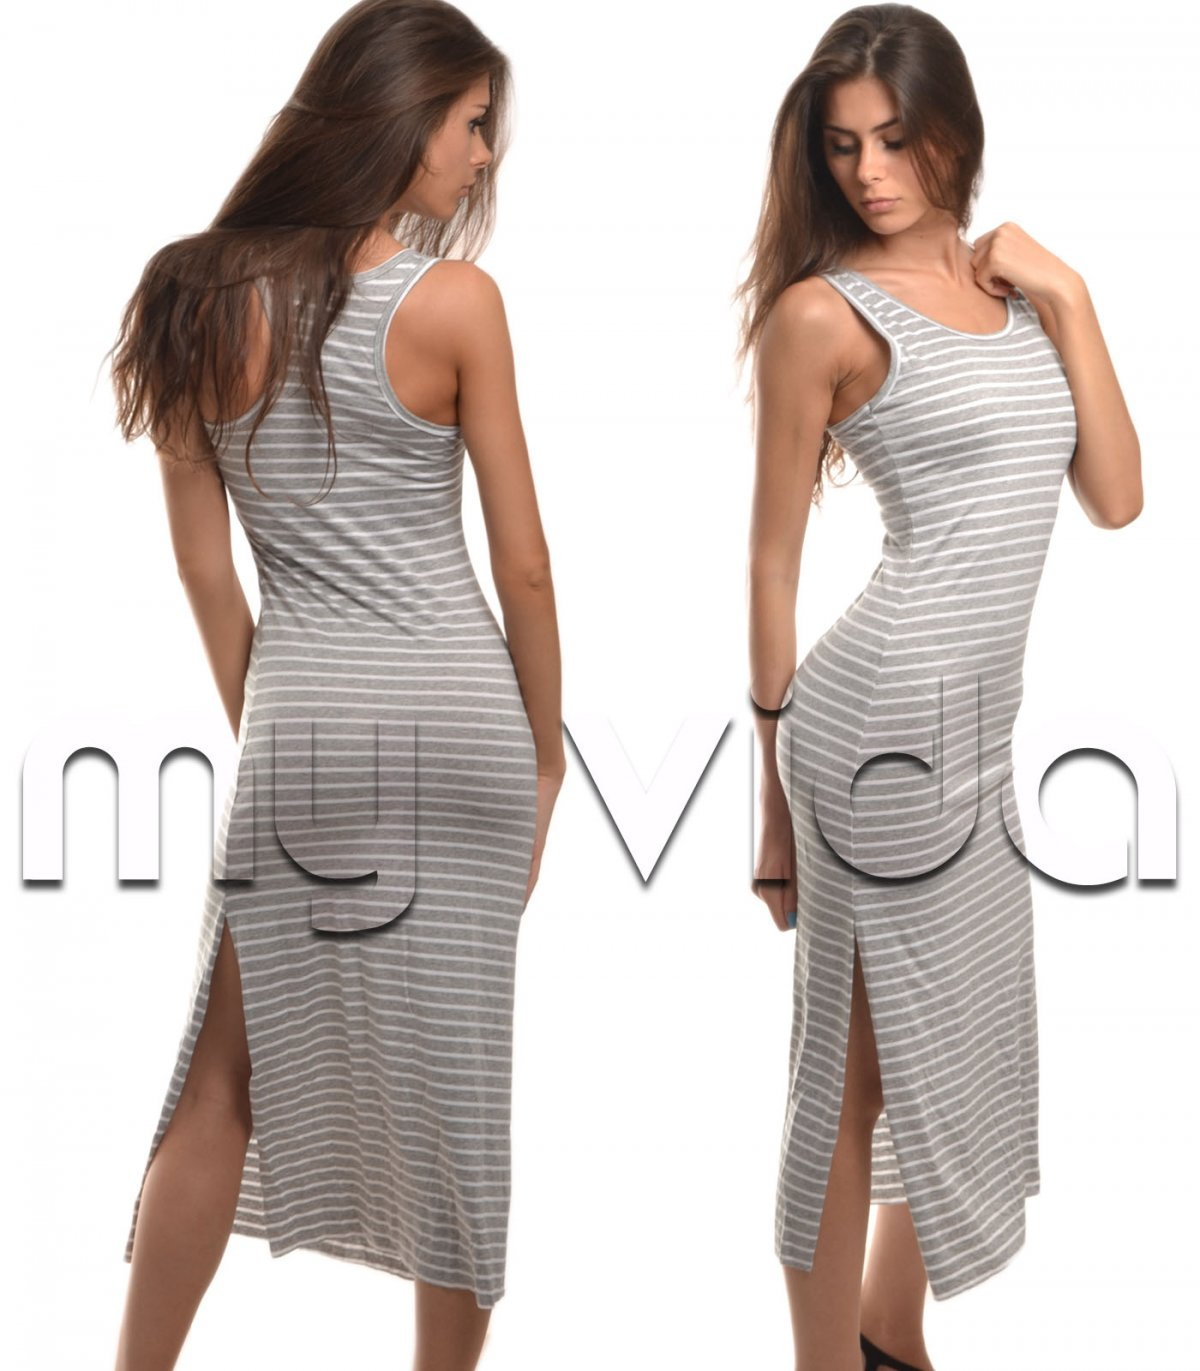 lowest price 8fed1 2f3c0 Moda mare vestito lunghe righe donna dress summer | My Vida